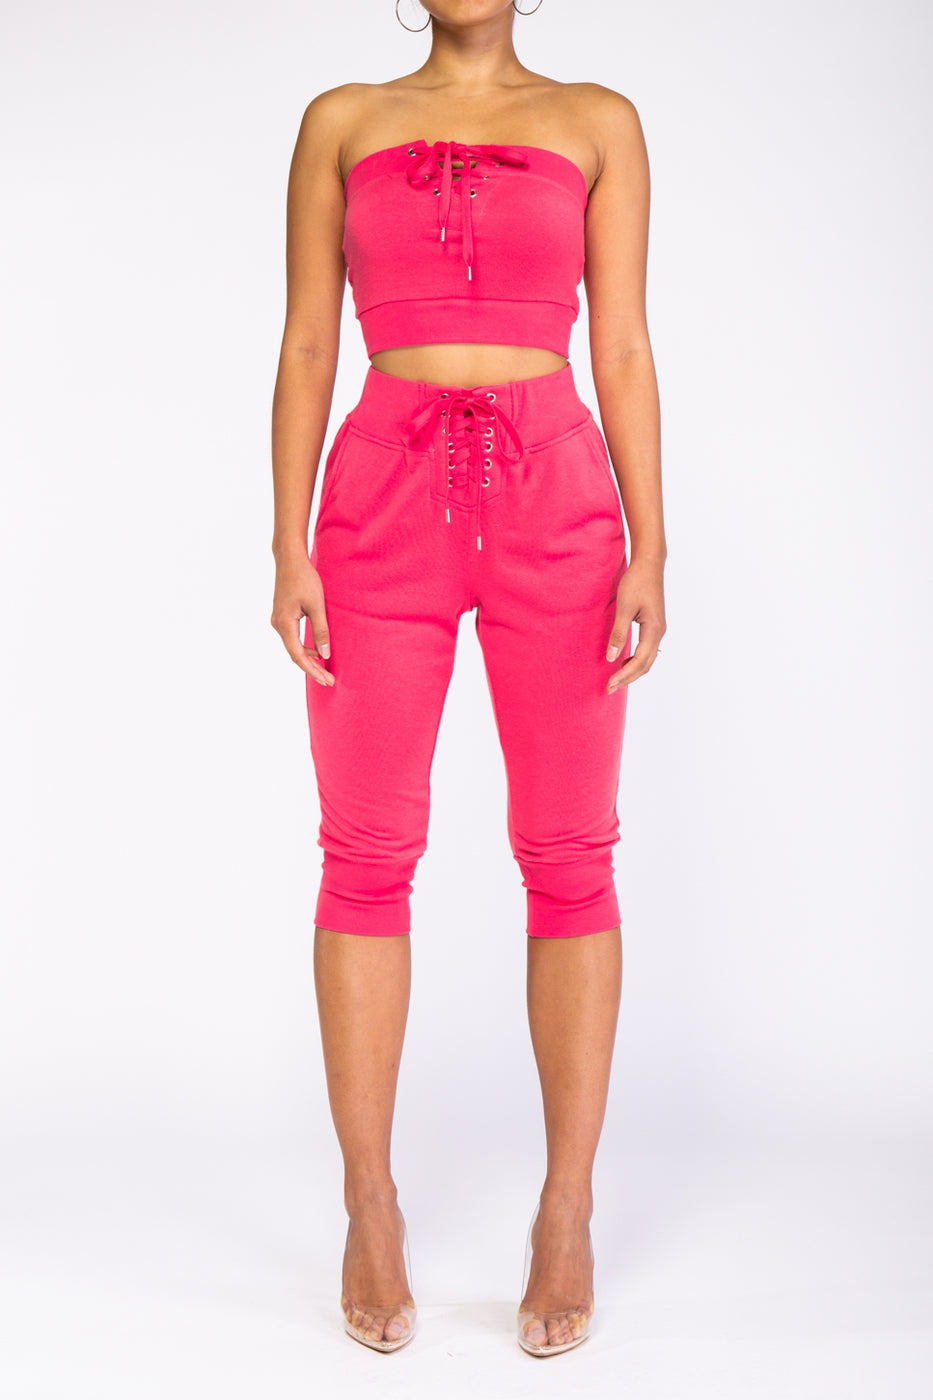 Pink Icon Set - Pants, Sets, Top - Labeled-Couture - Labeled- Couture